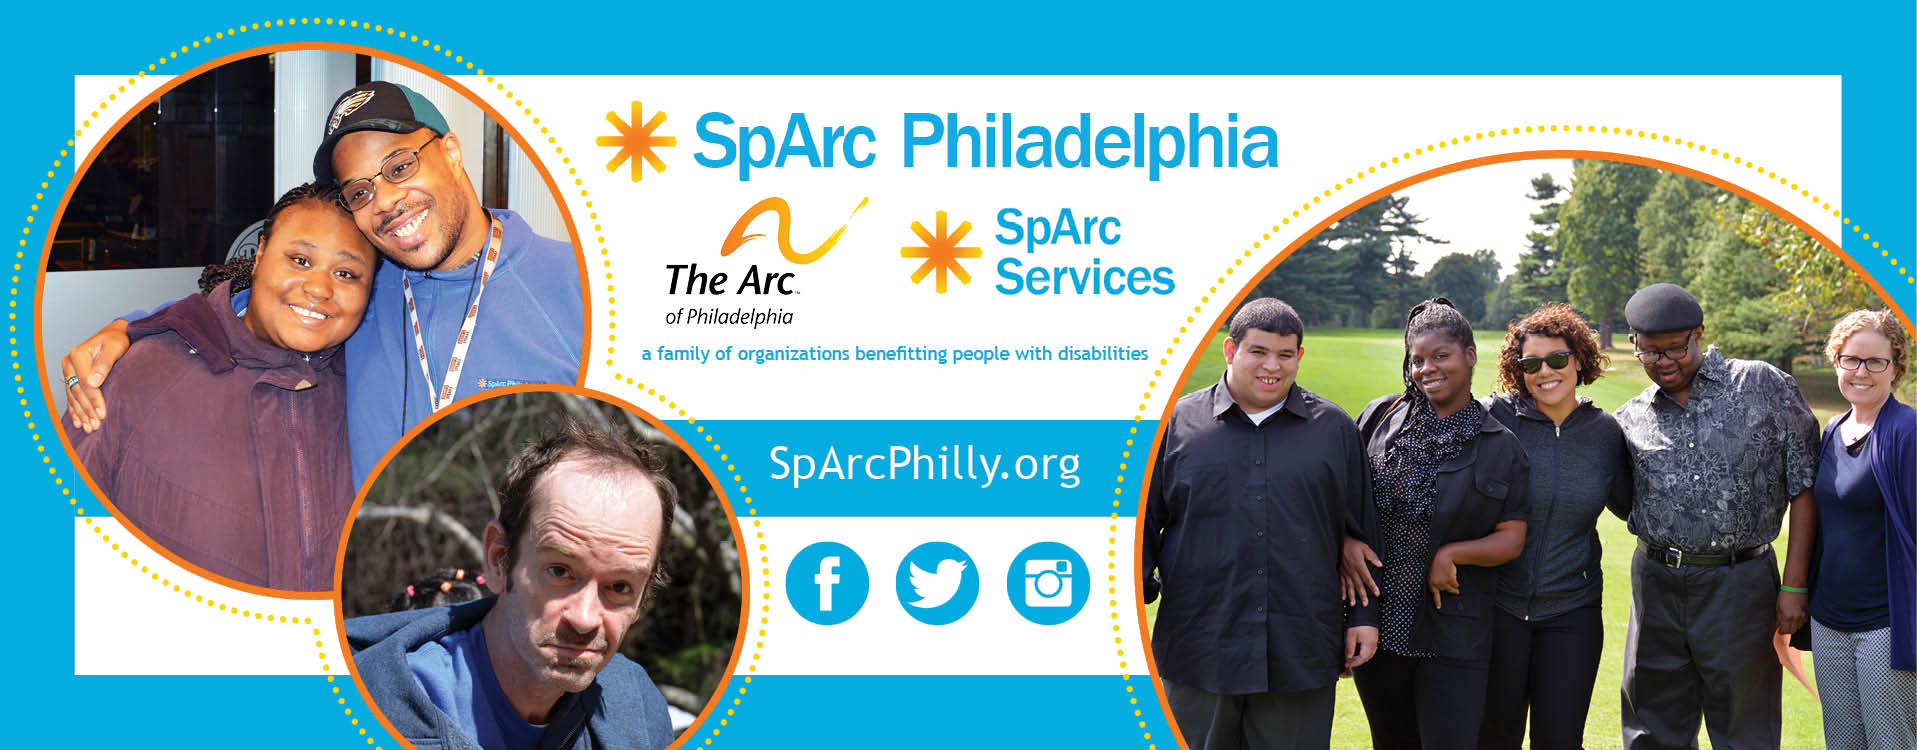 Sparc Philly